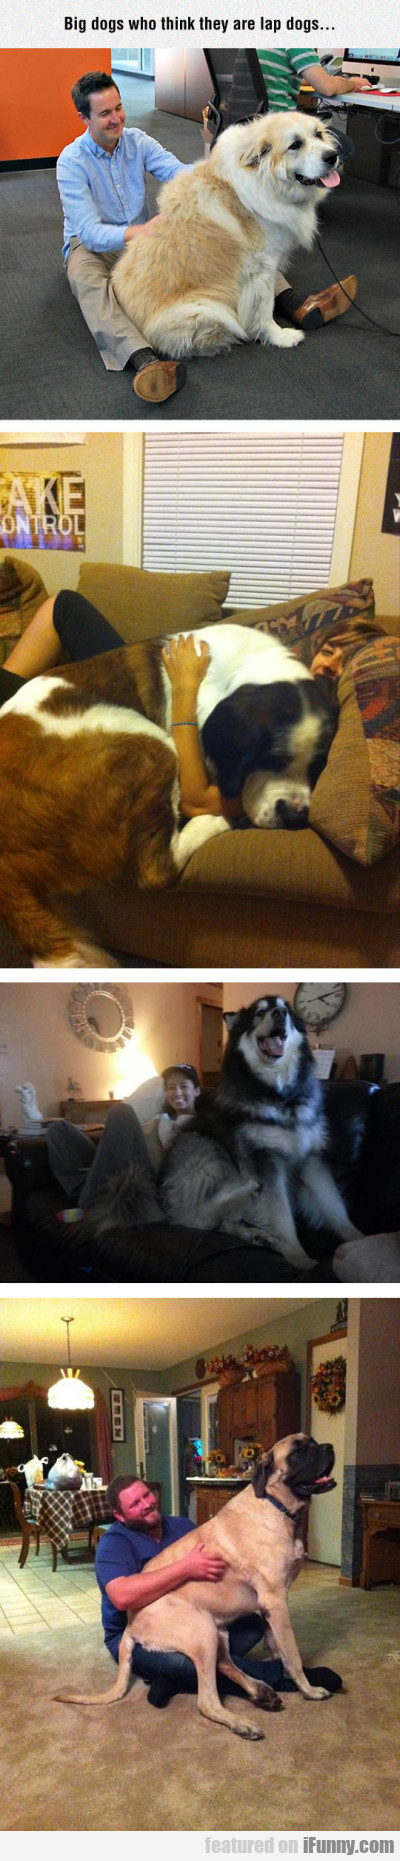 Big Dogs Who Think They Are Lap Dogs